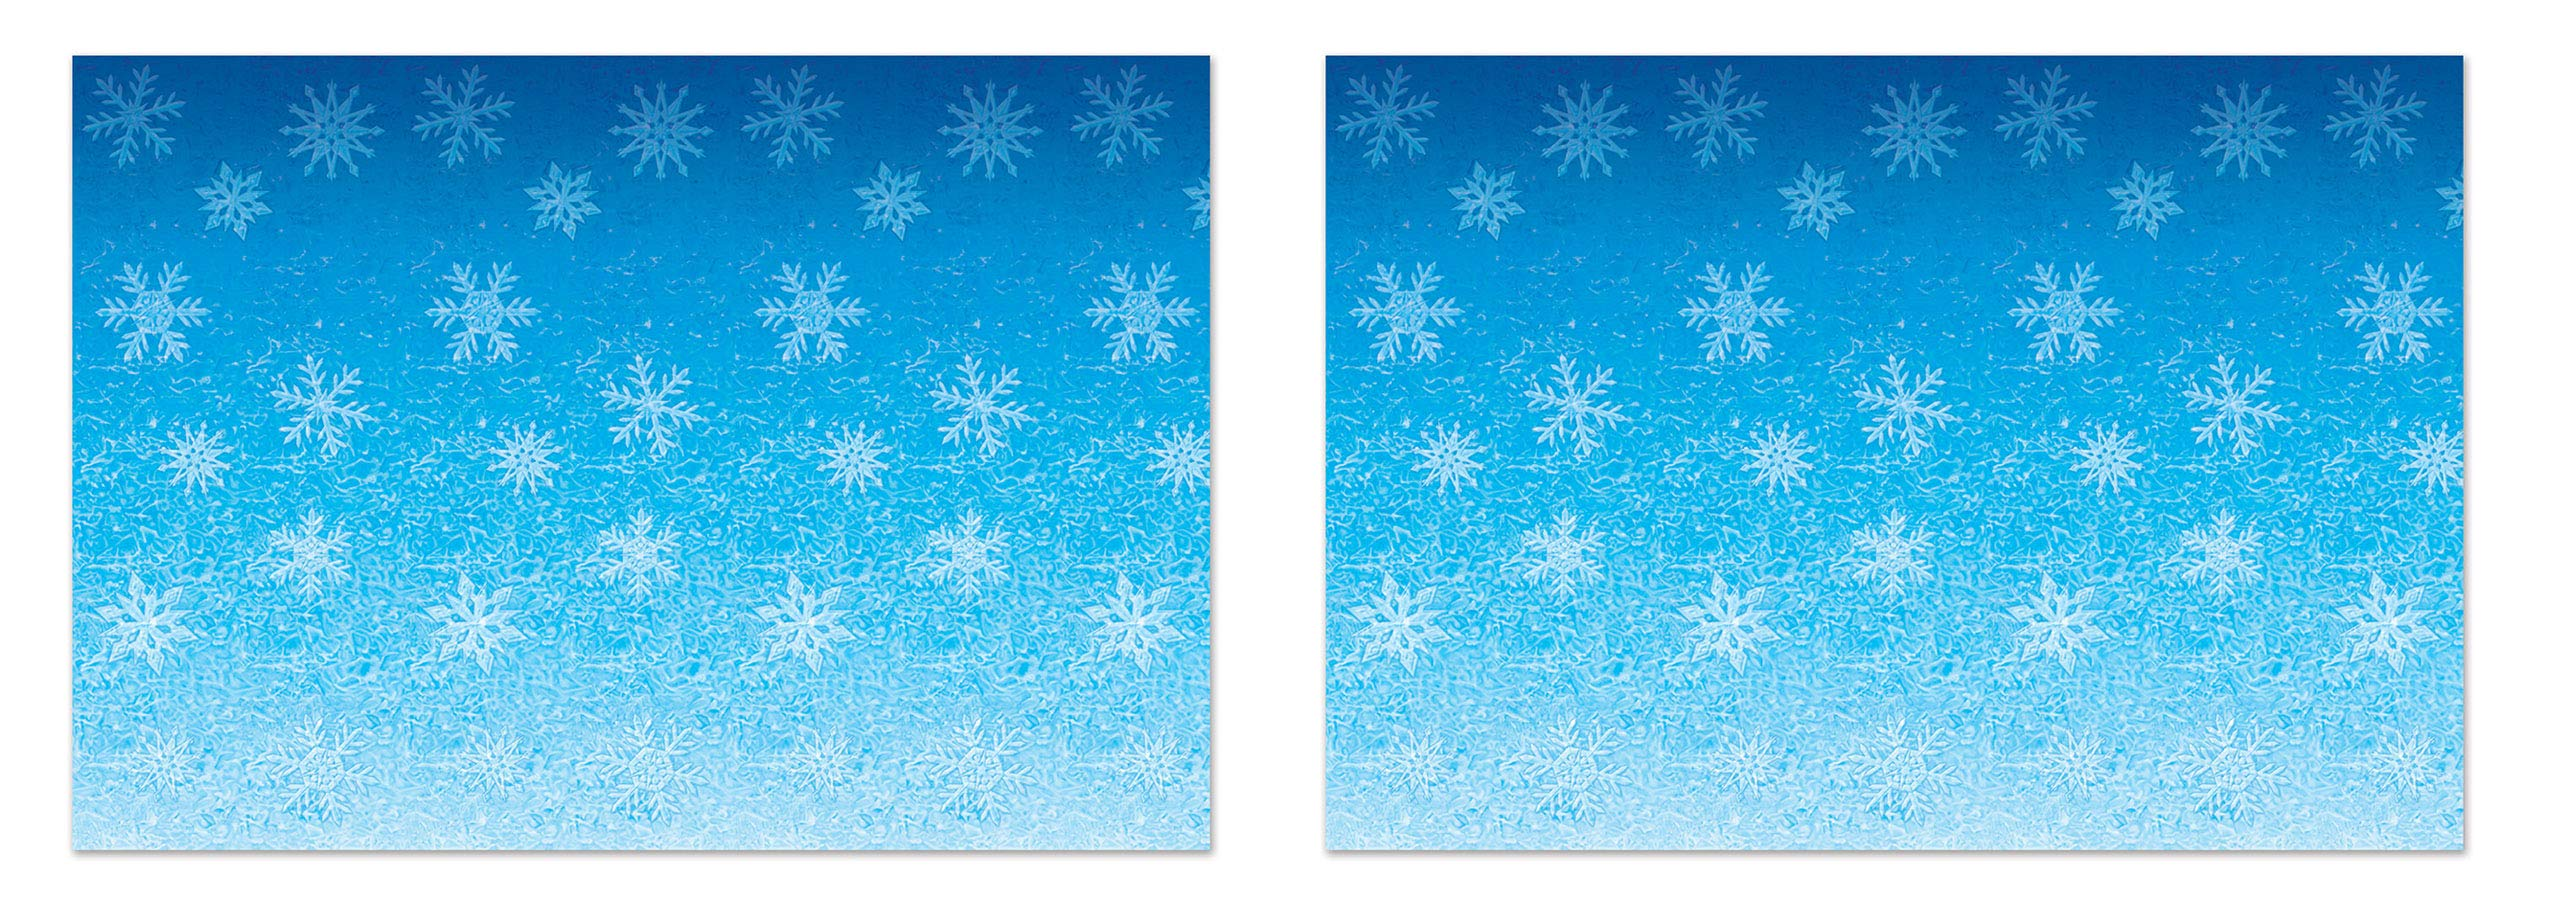 Beistle S20207AZ2 Snowflakes Backdrops 2 Piece, 4' x 30' Light Blue/White